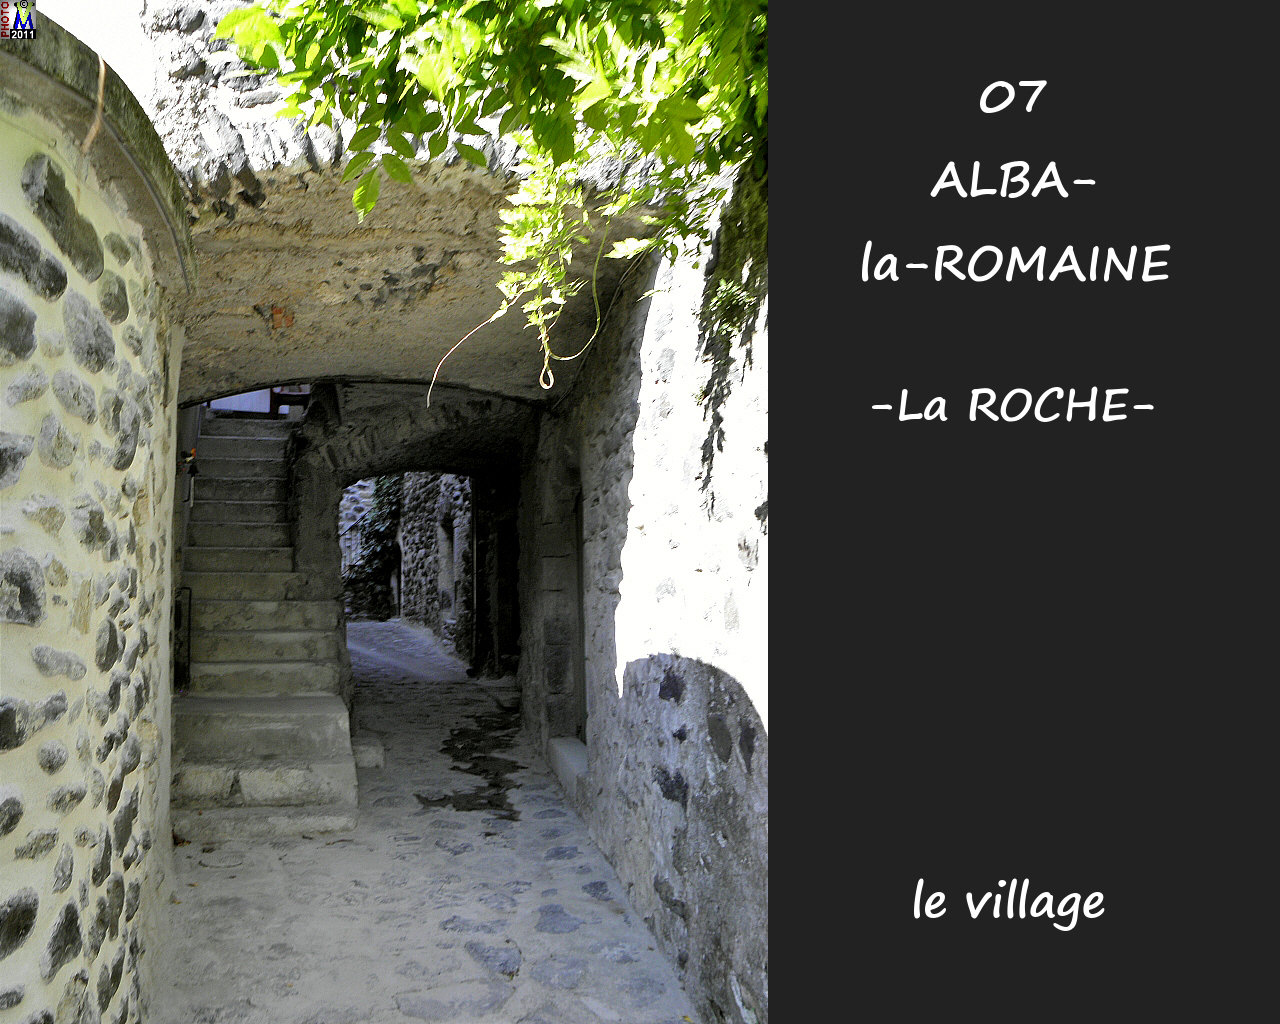 07ALBA-ROMAINEzROCHE_village_110.jpg